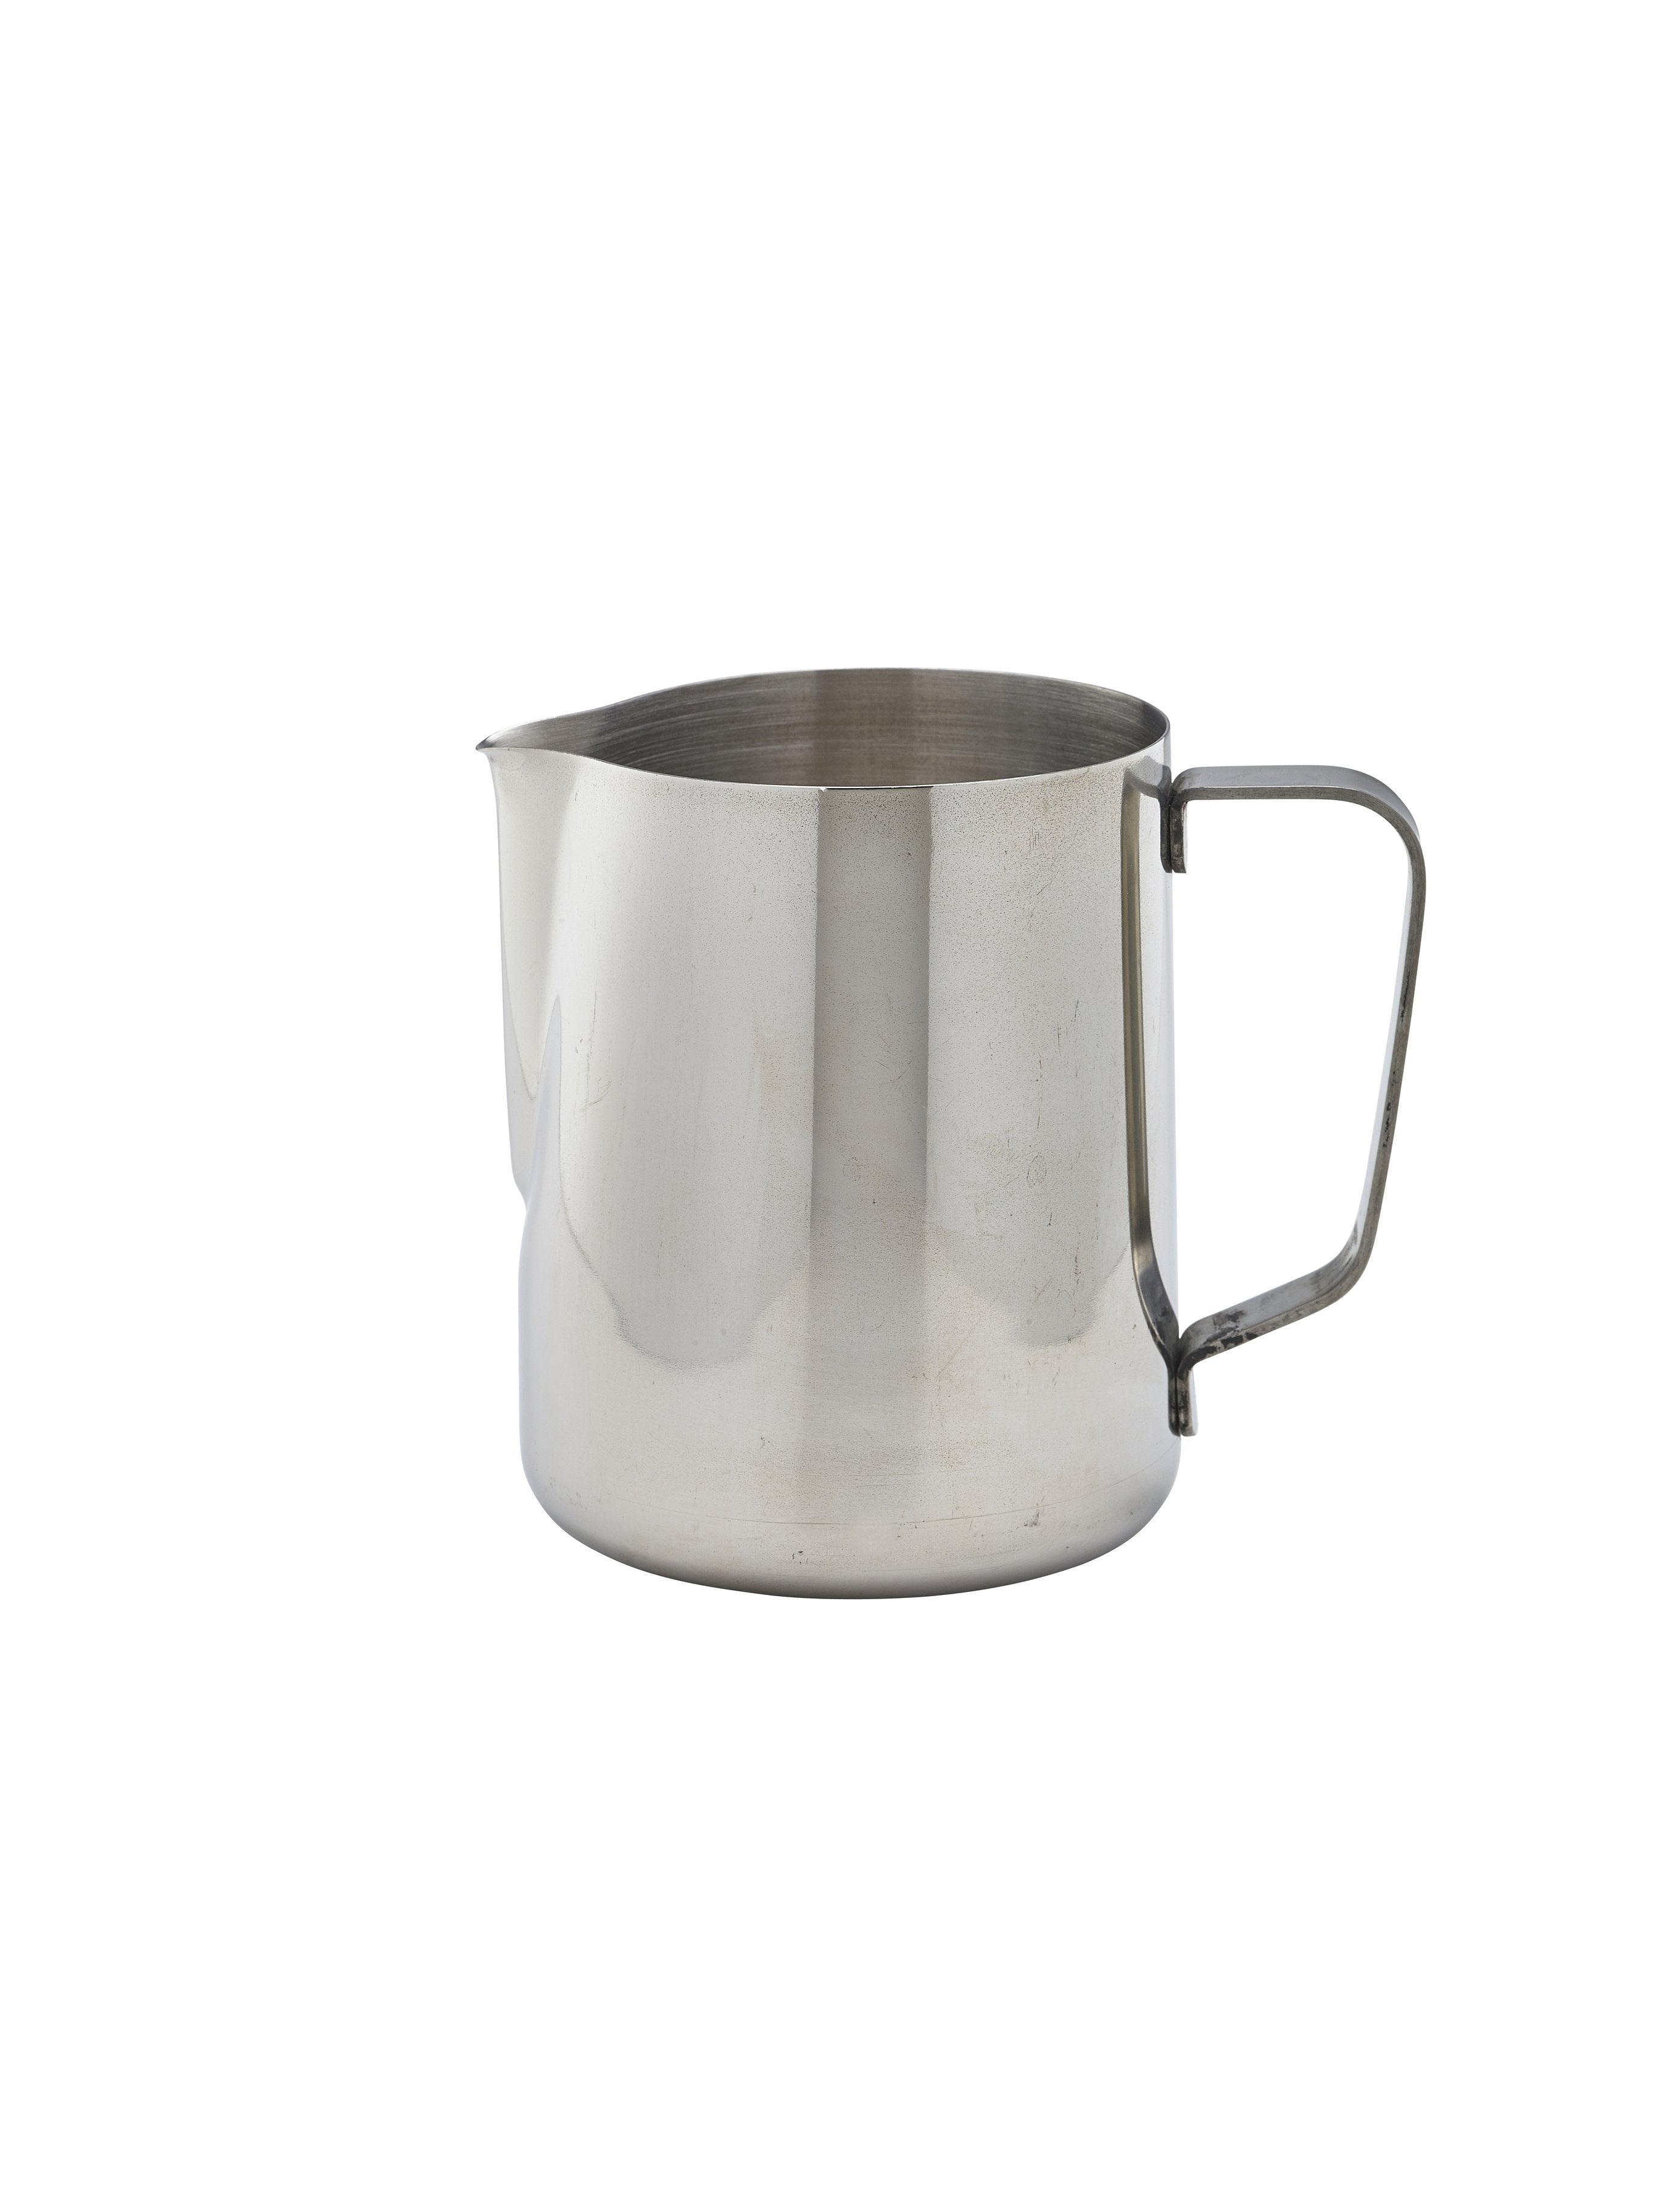 GenWare Stainless Steel Conical Jug 34cl/12oz